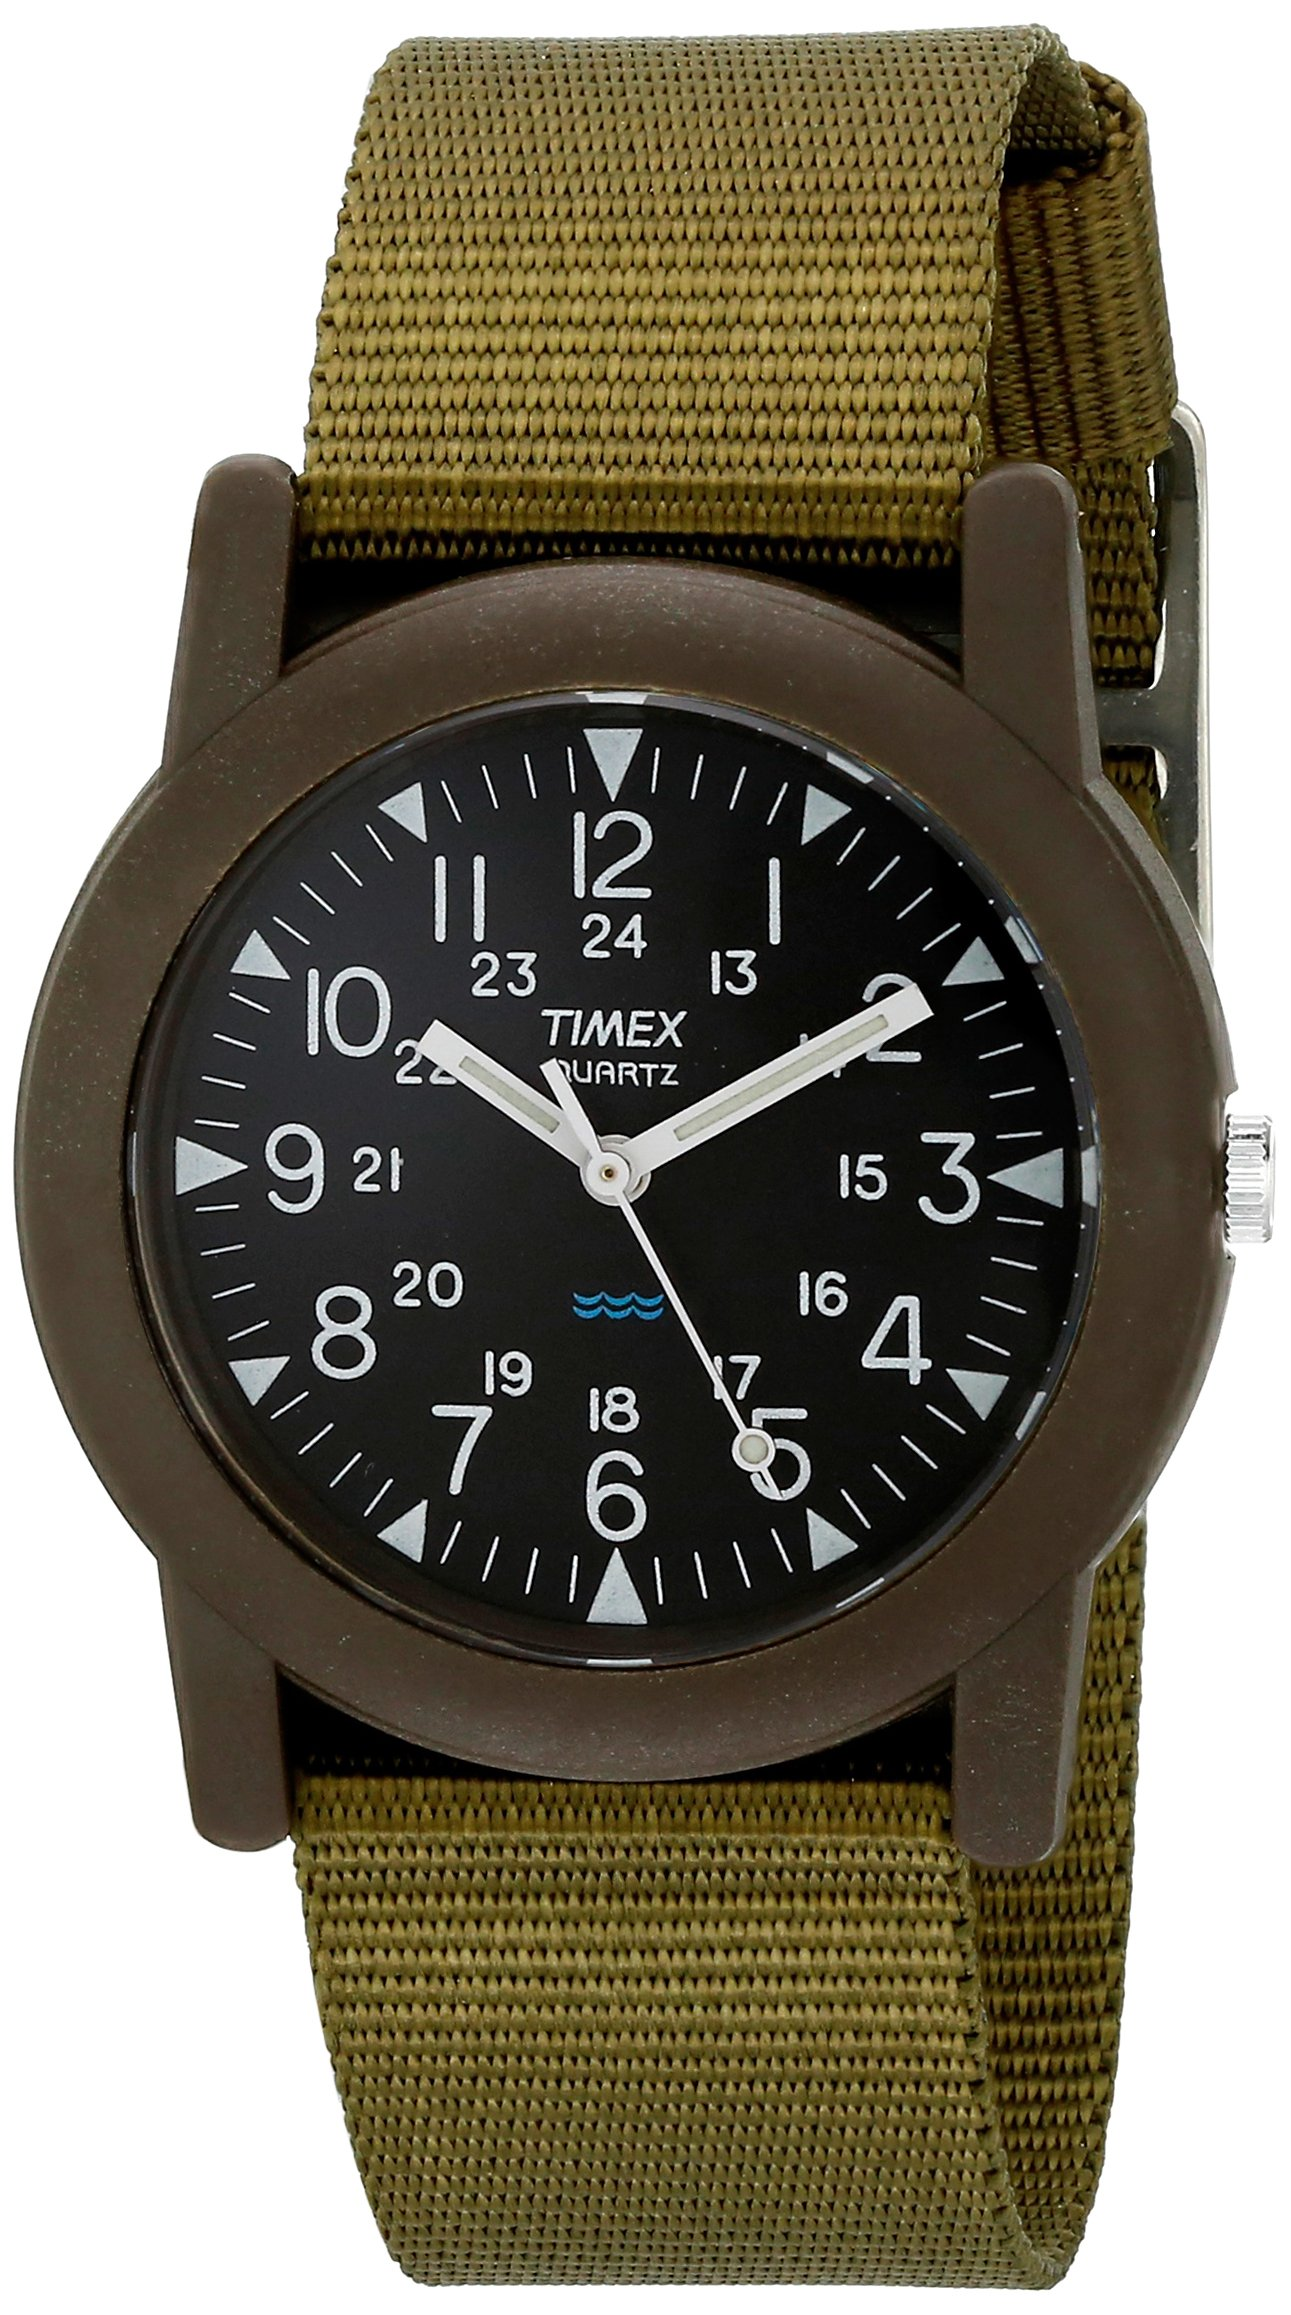 Timex Unisex Quartz Camper Watch with Analogue Digital Display and Nylon Strap